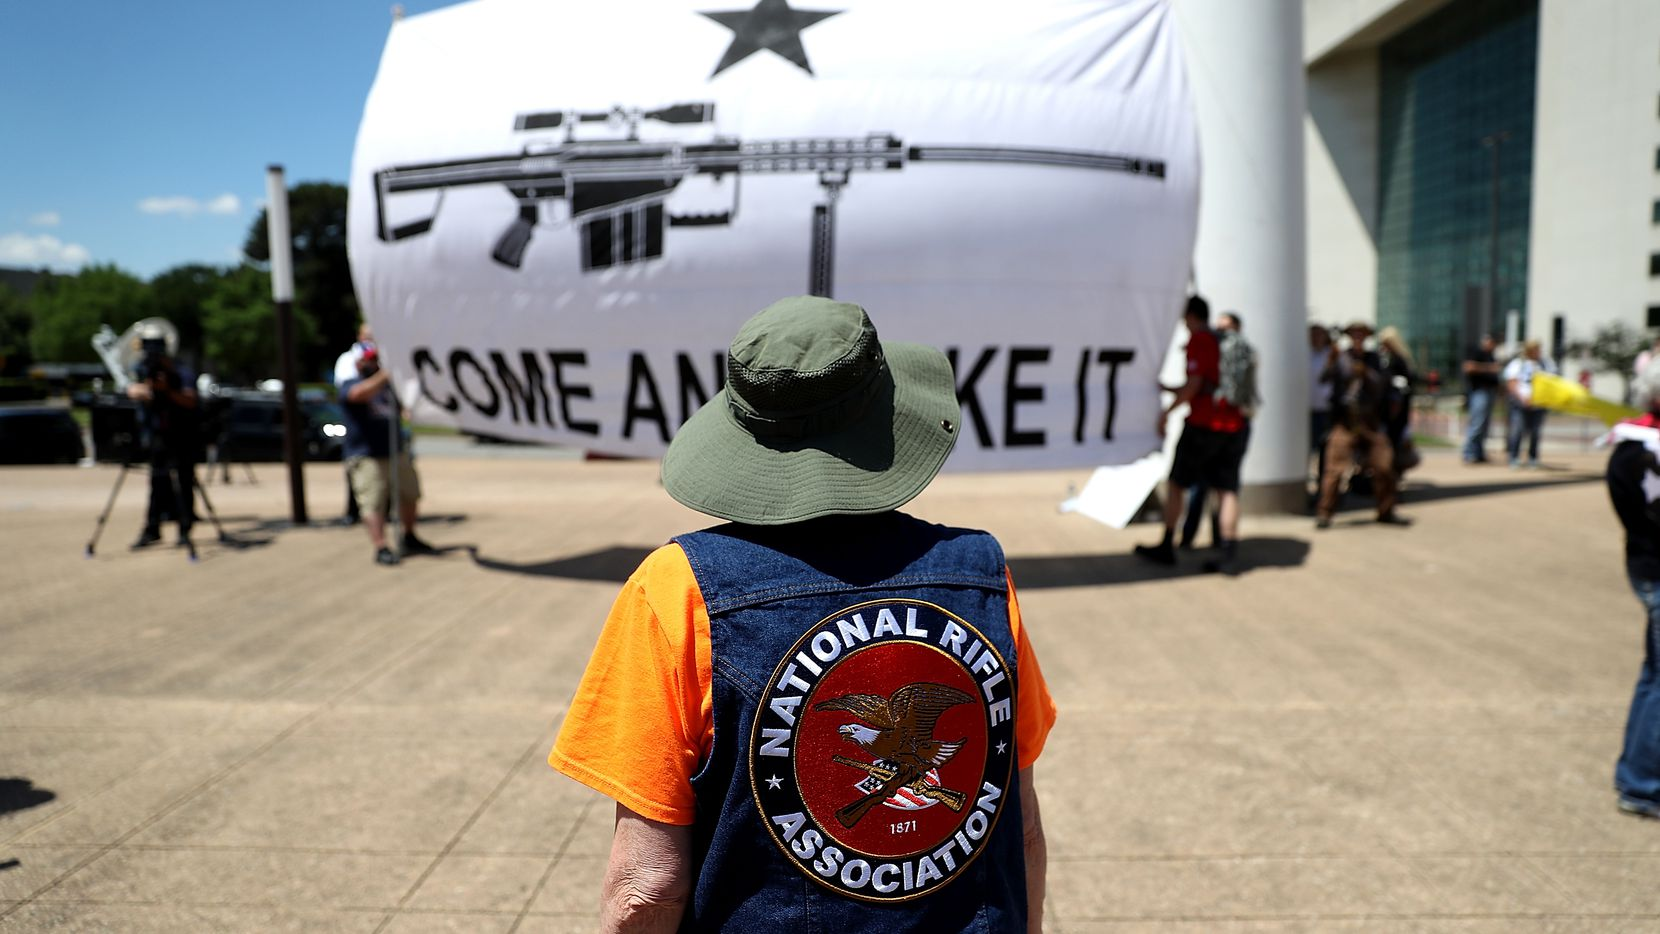 Gun rights advocates stage a demonstration outside of Dallas City Hall near the NRA Annual Meeting & Exhibits at the Kay Bailey Hutchison Convention Center on May 5, 2018 in Dallas, Texas.  The National Rifle Association's annual meeting and exhibit runs through Sunday.  (Photo by Justin Sullivan/Getty Images)